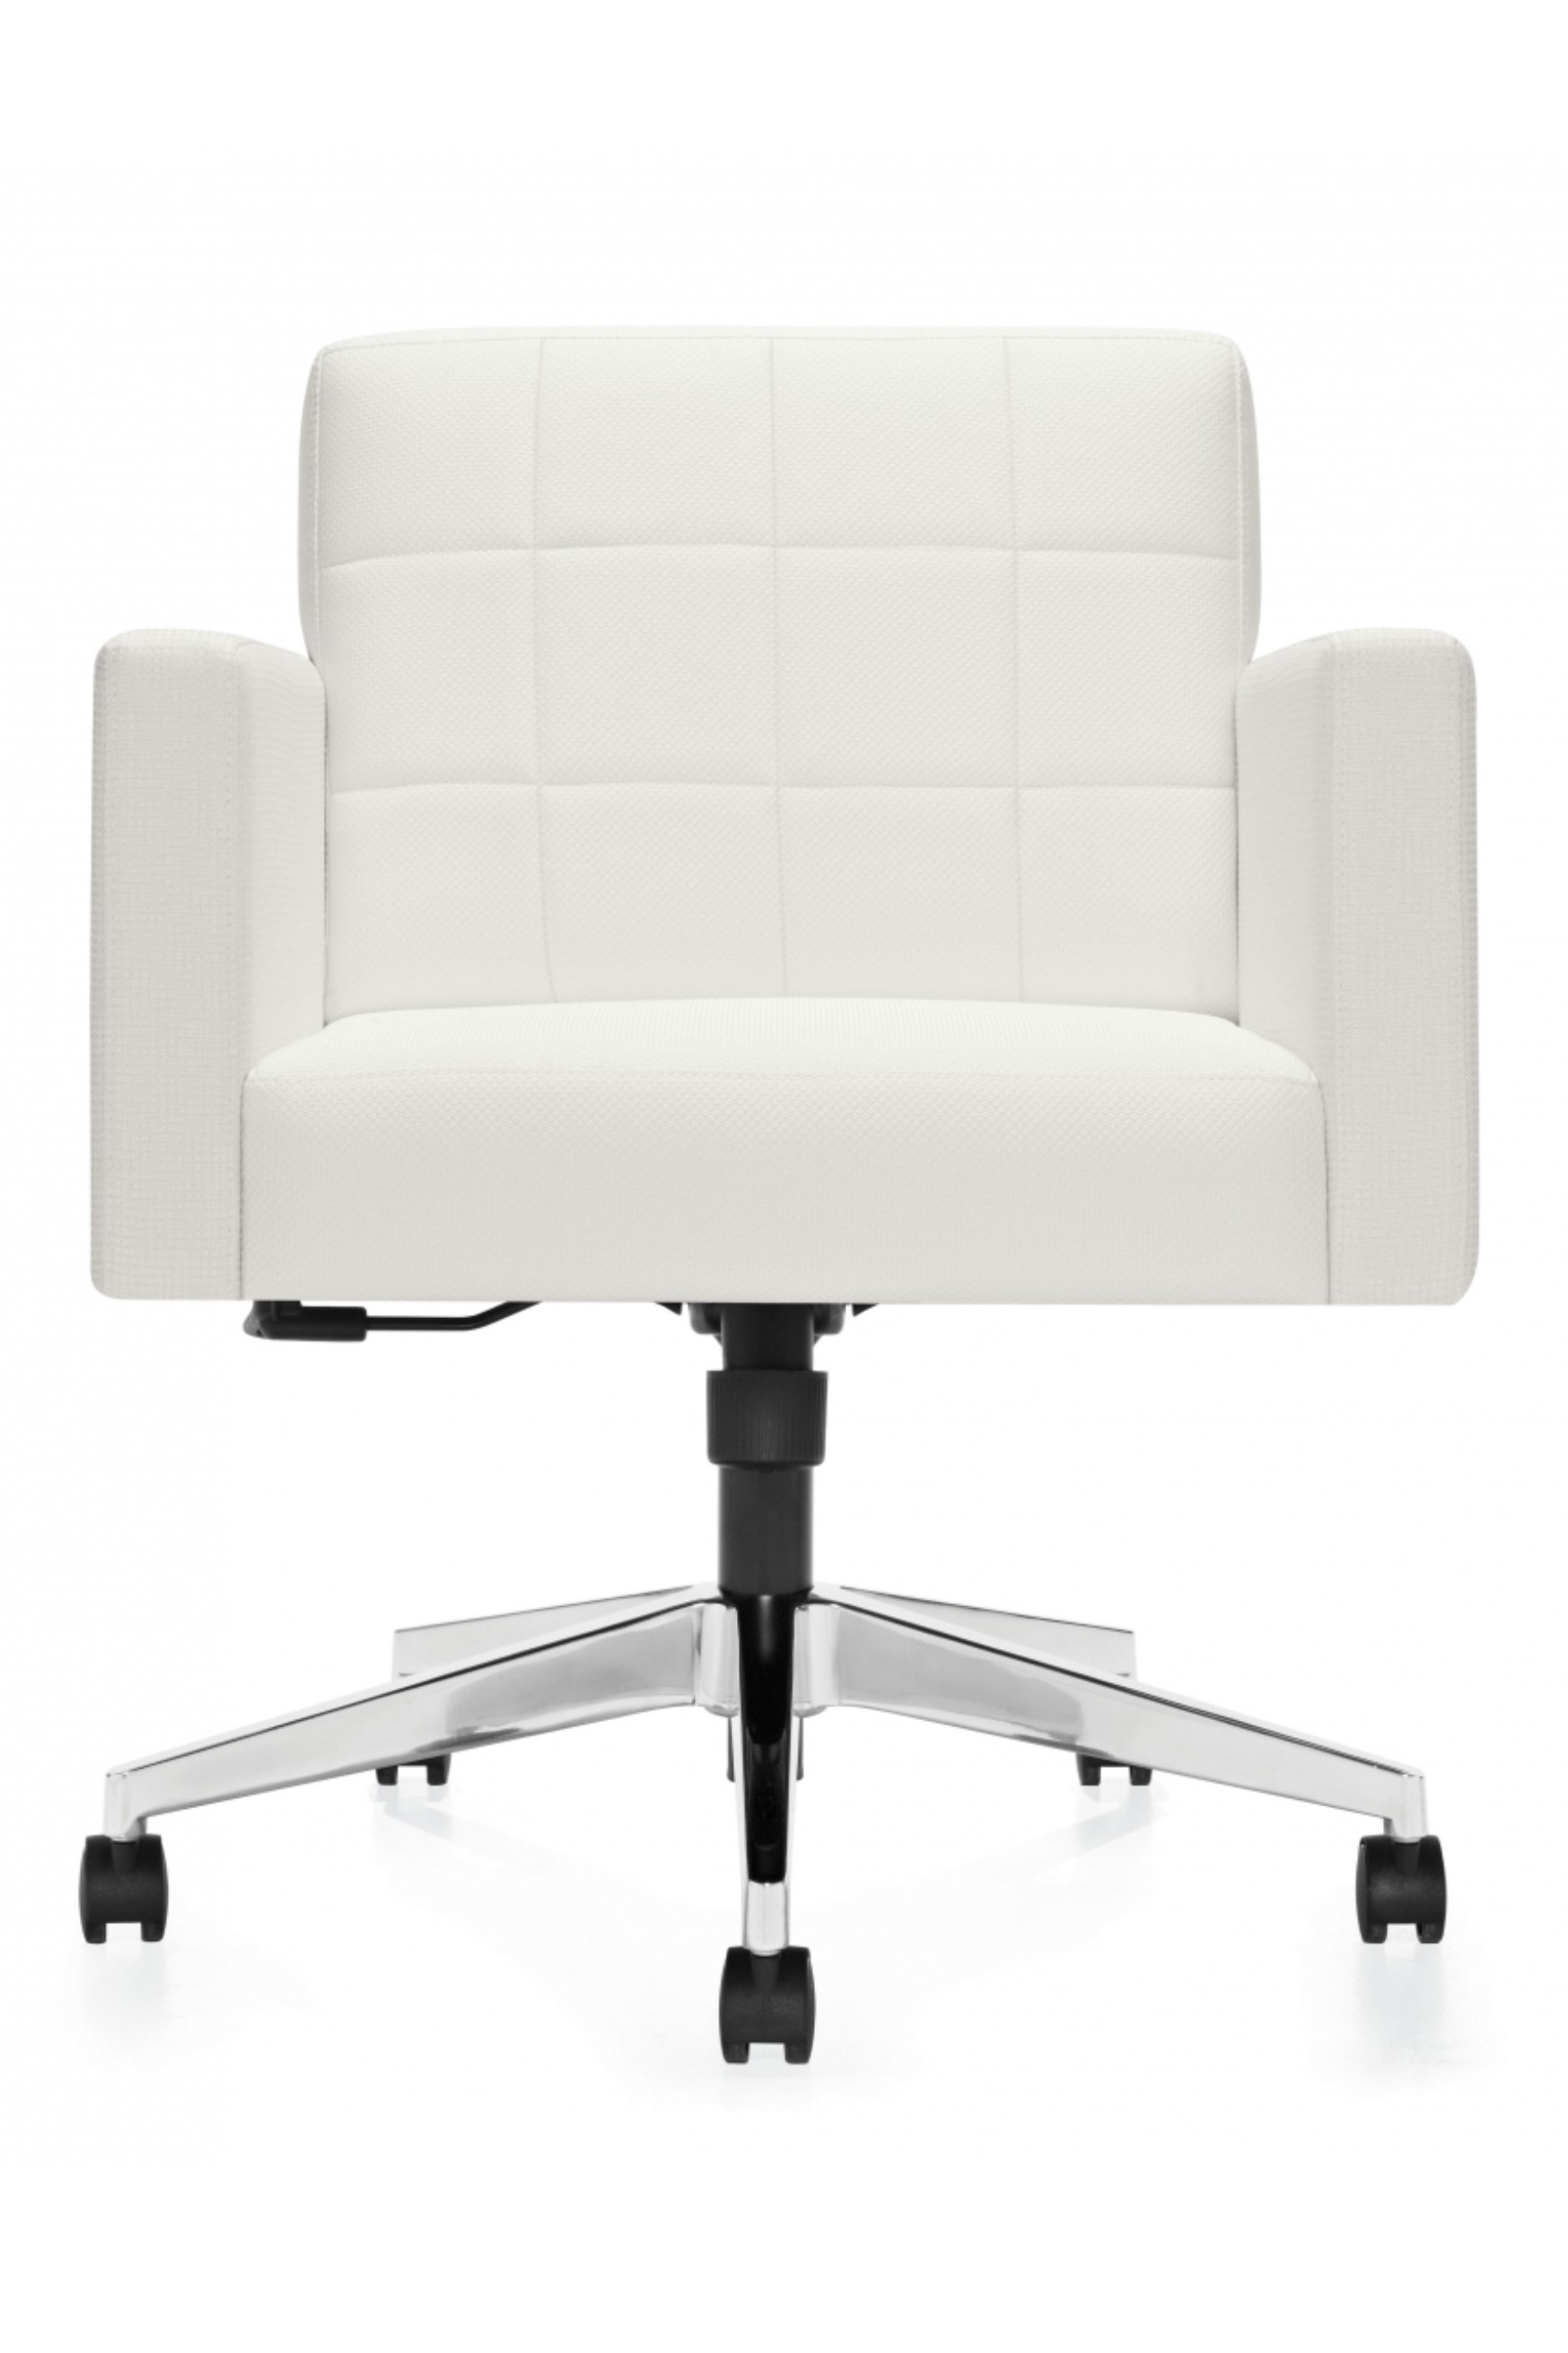 Conference Chair 2